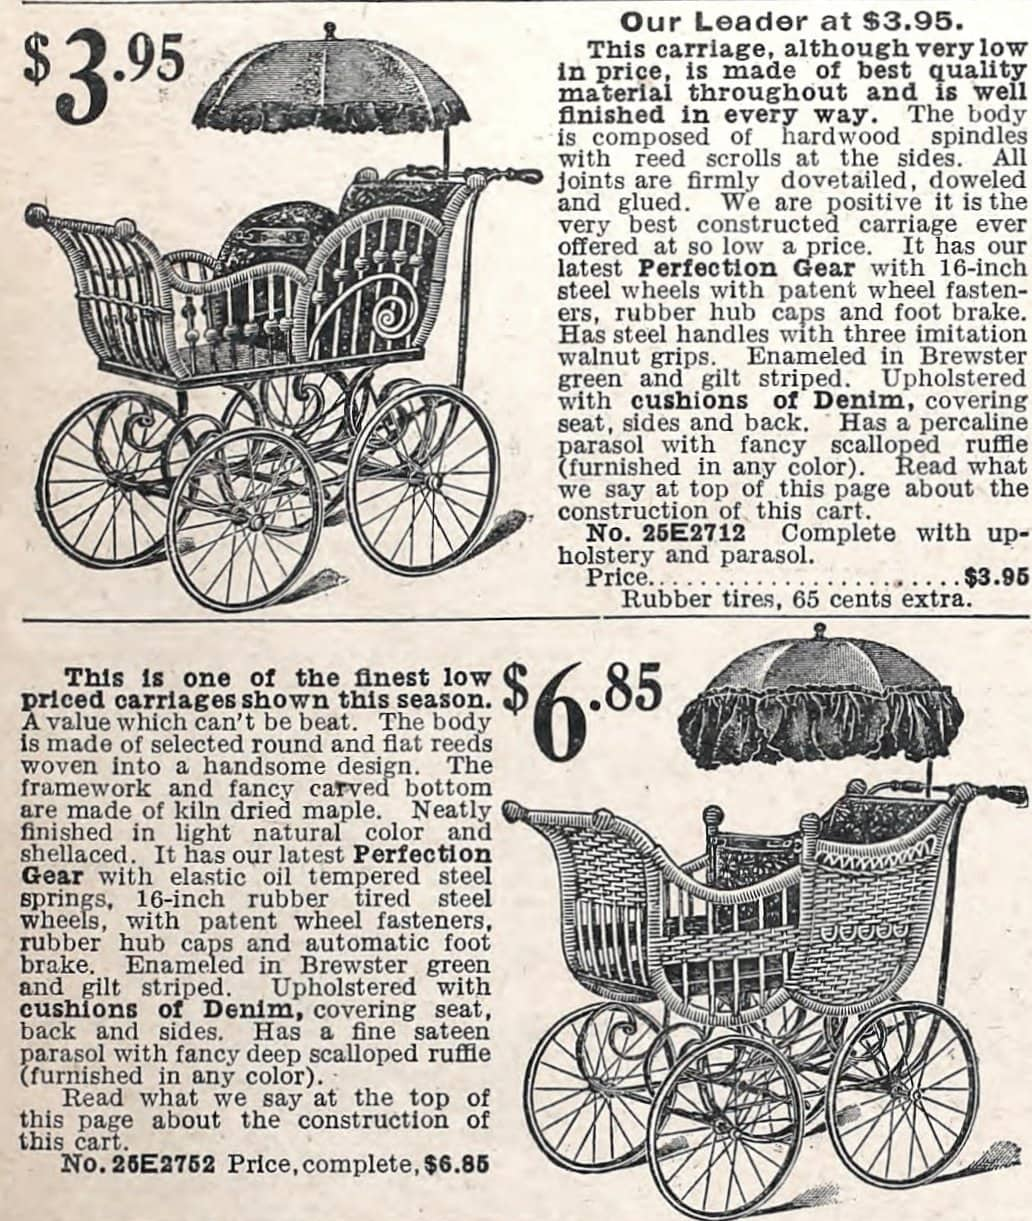 Vintage baby strollers - go-carts - carriages - prams (1905)